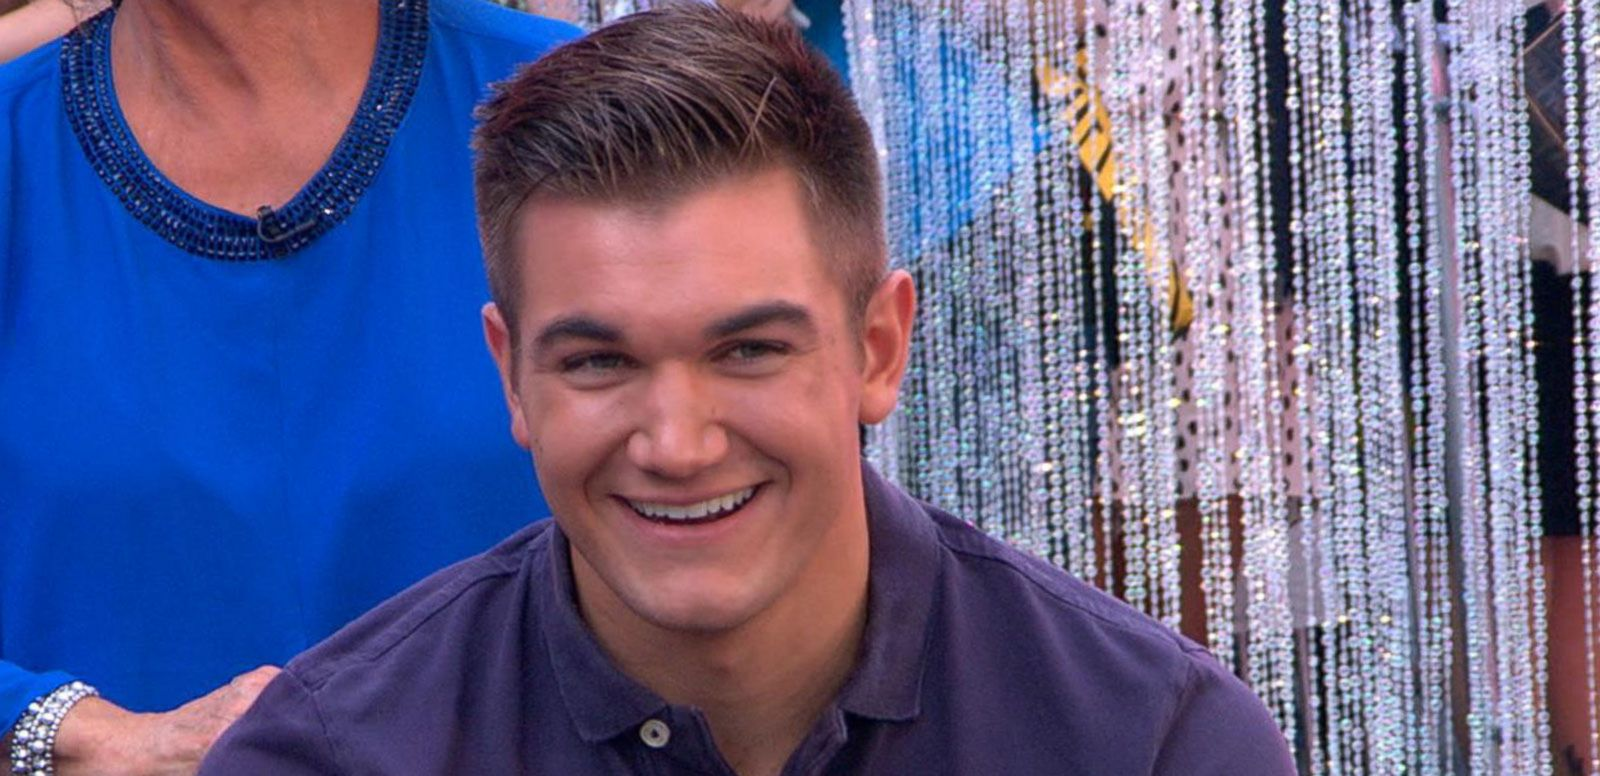 VIDEO: American Train Hero Alek Skarlatos Will Compete on 'Dancing With the Stars'